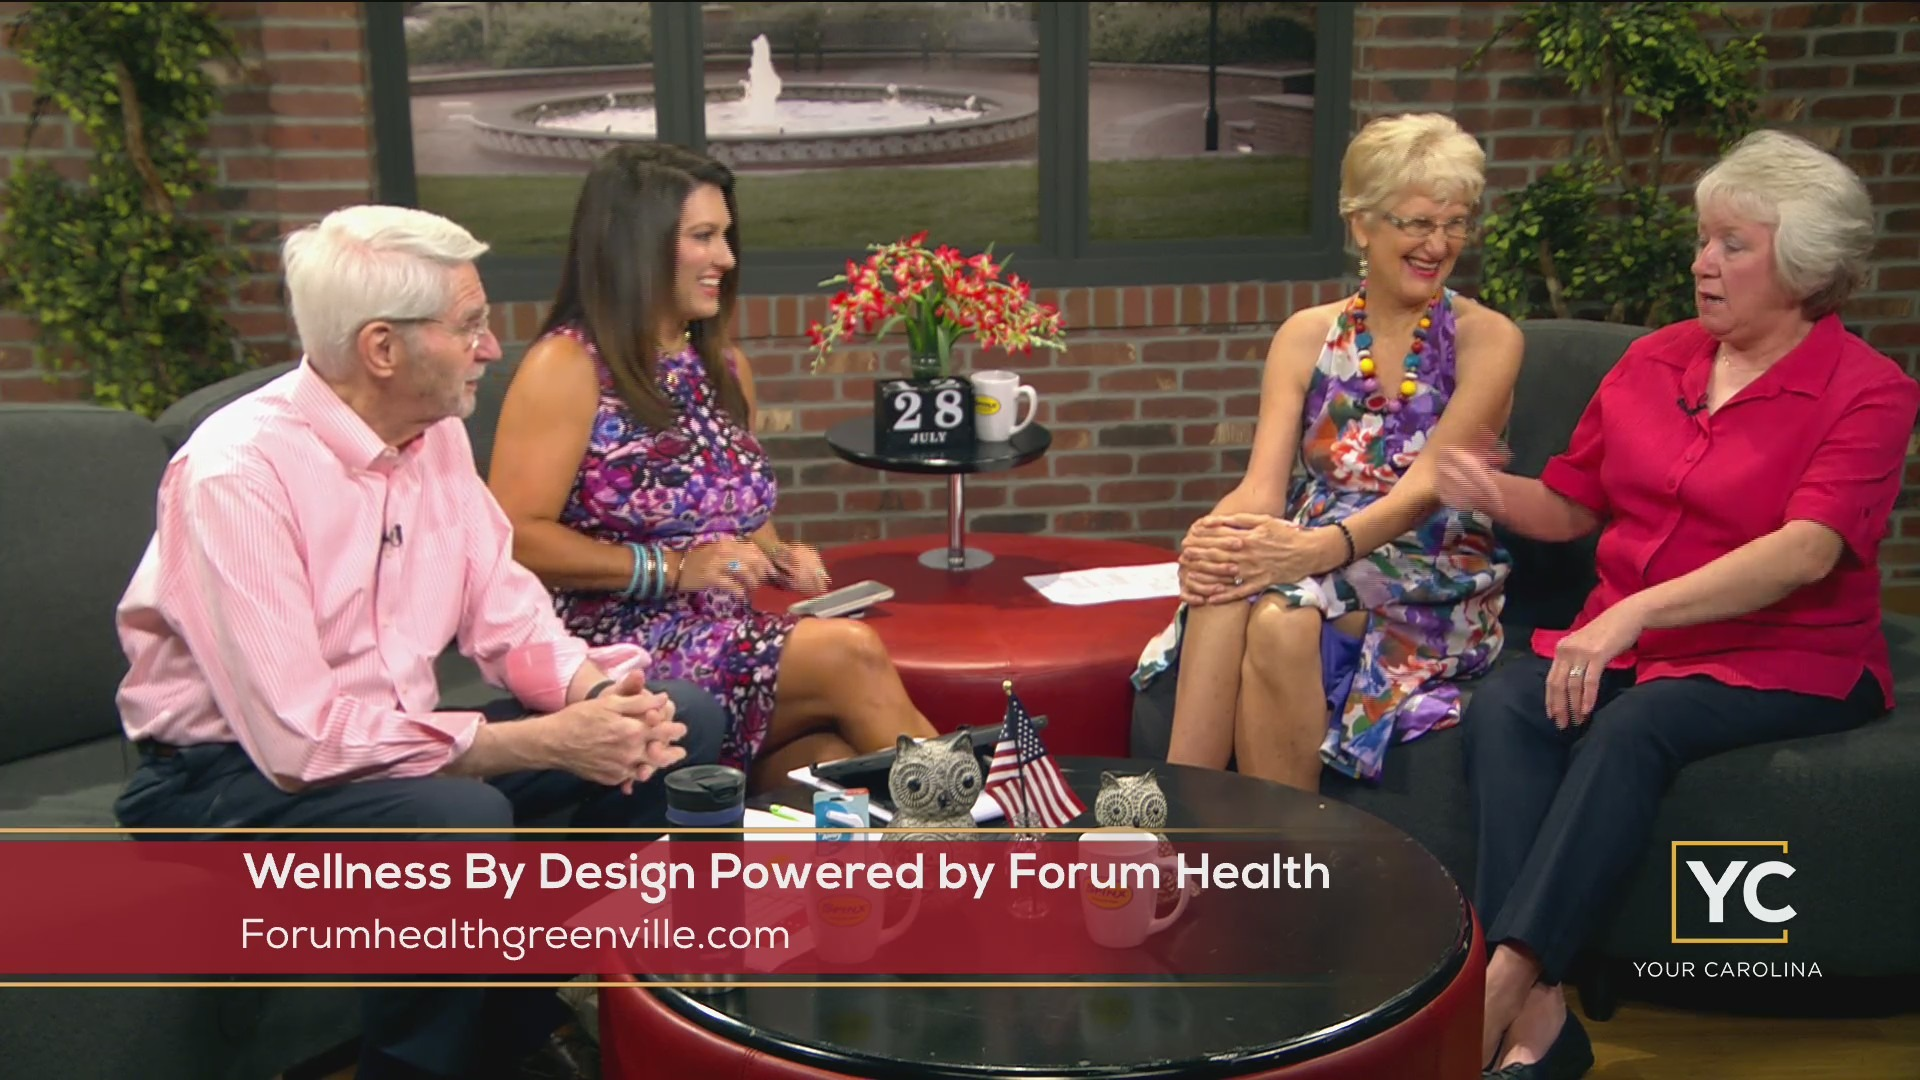 Wellness By Design Powered by Forum Health - Pellet Hormone Treatment